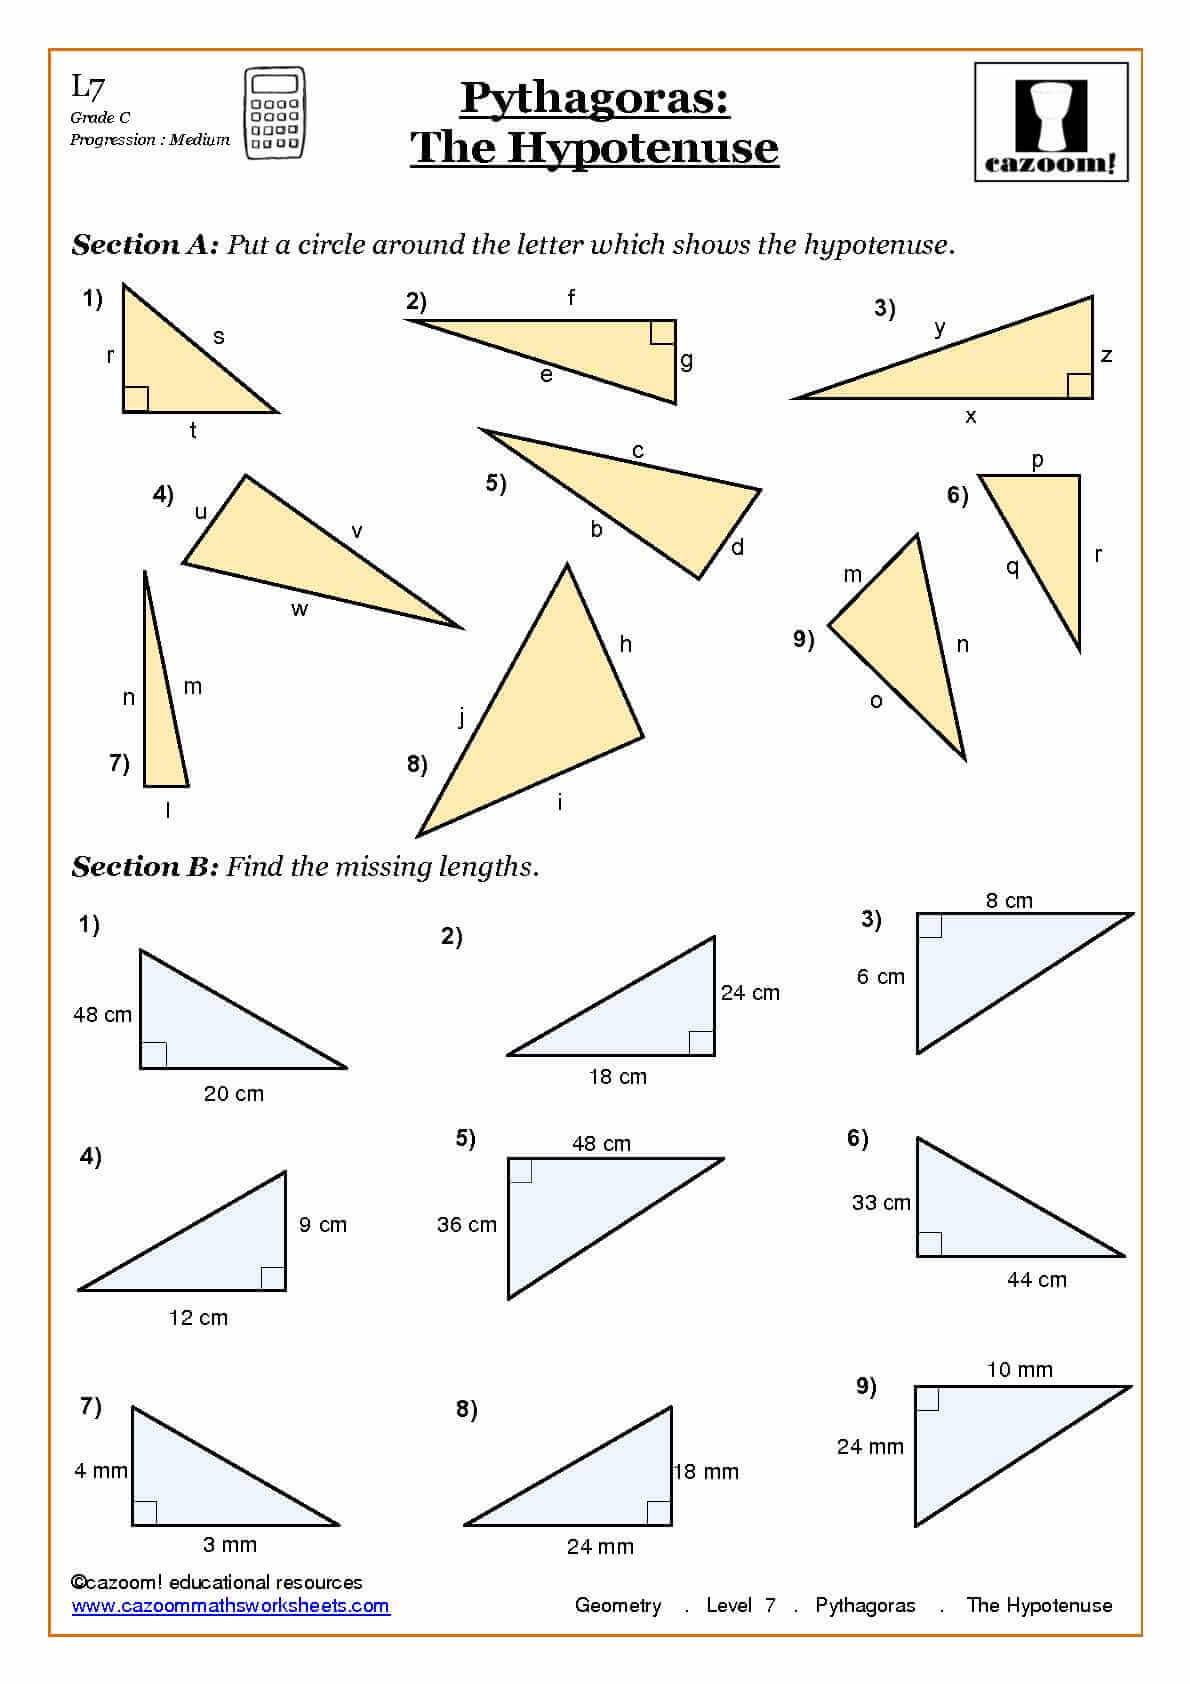 Pythagoras The Hypotenuse Geometry Worksheets